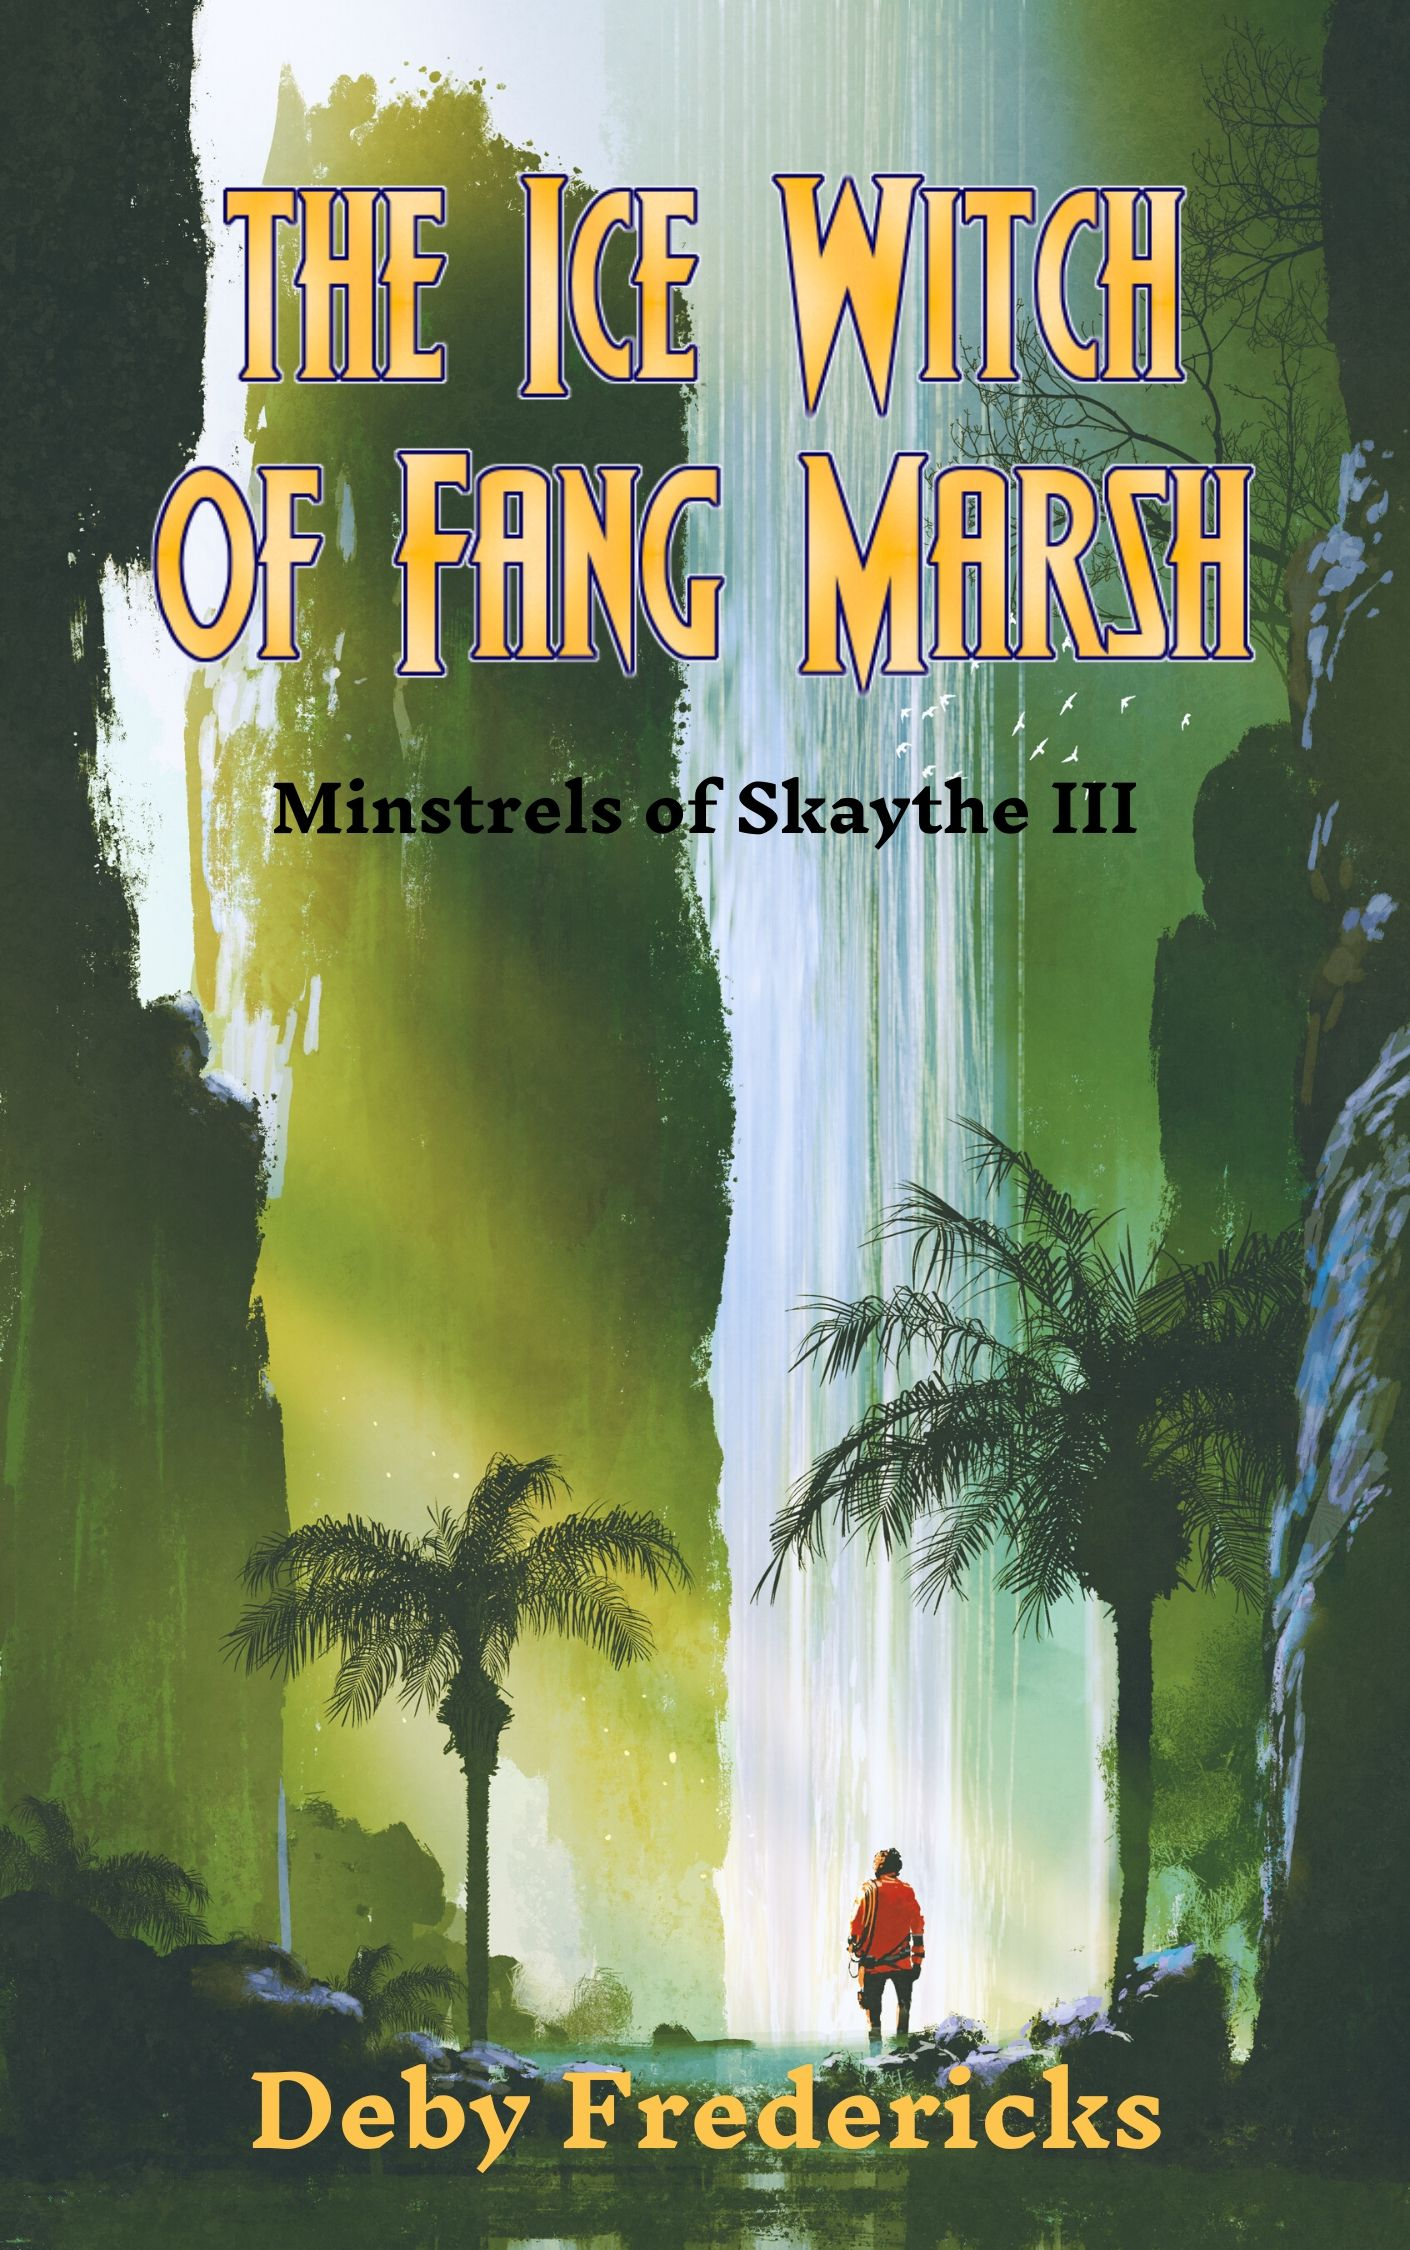 Cover to The Ice Witch of Fang Marsh